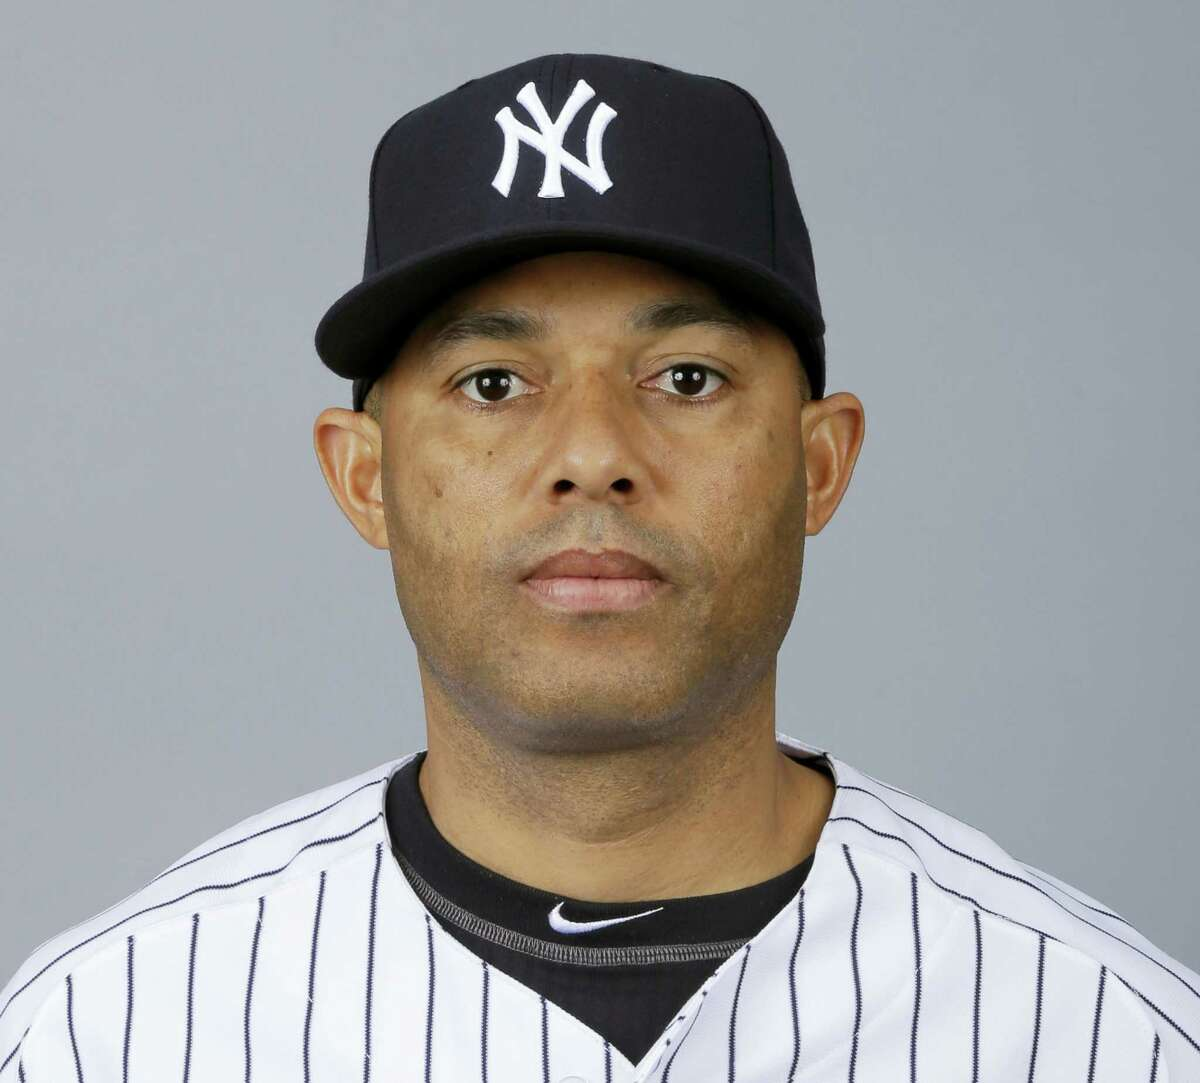 The Yankees will dedicate a plaque for retired relief pitcher Mariano Rivera in Monument Park on Aug. 14 before a game against Tampa Bay.